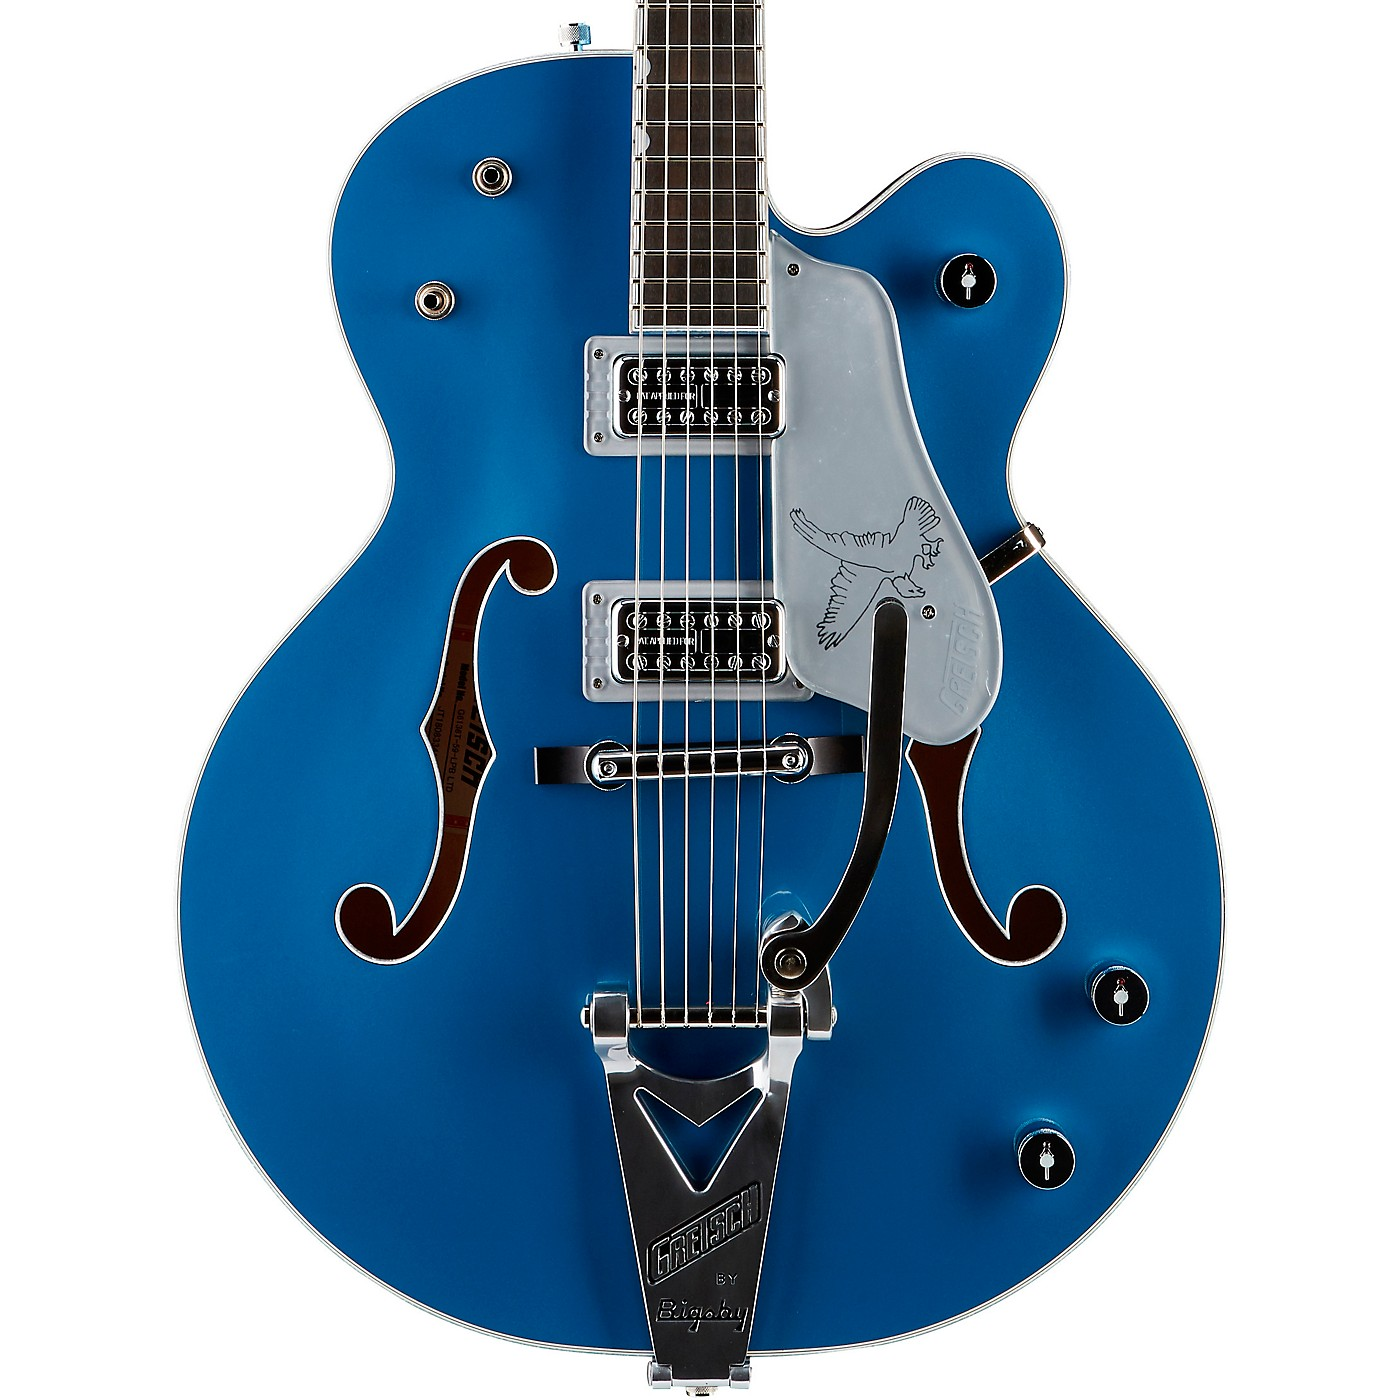 Gretsch Guitars G6136T-59 Falcon with Bigsby Limited Edition Semi-Hollow Electric Guitar thumbnail